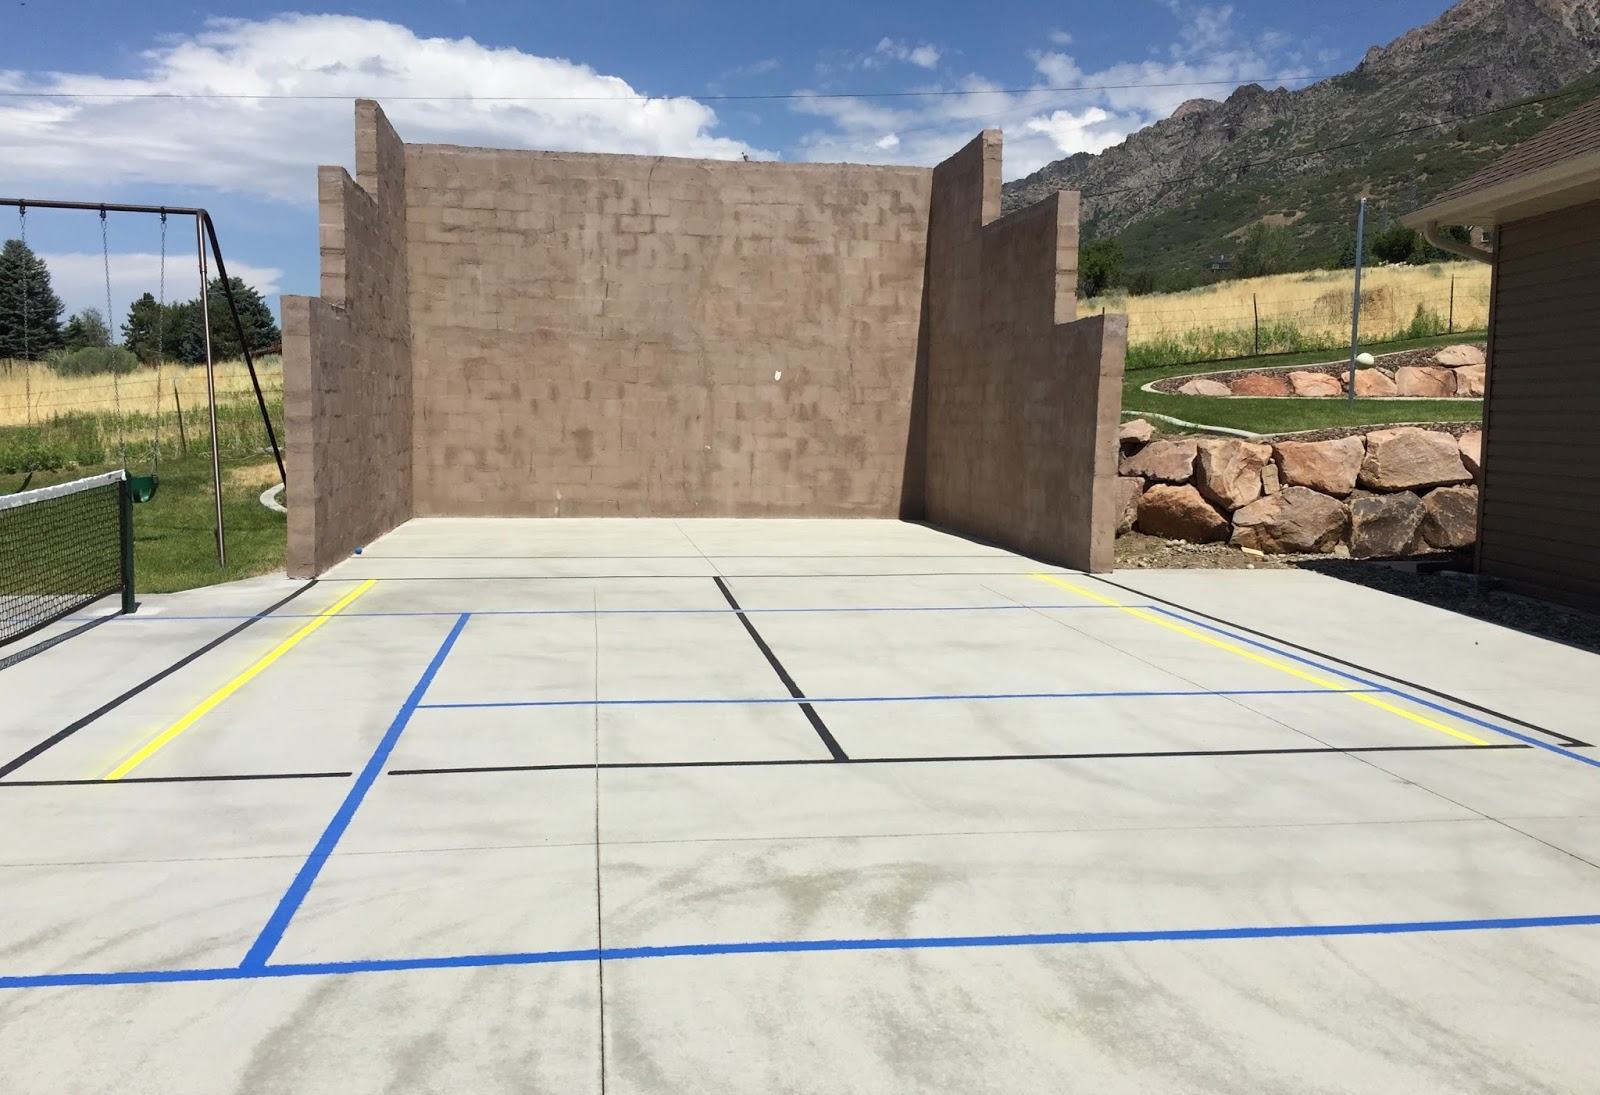 Diy projects building an outdoor racquetball court for Diy sport court